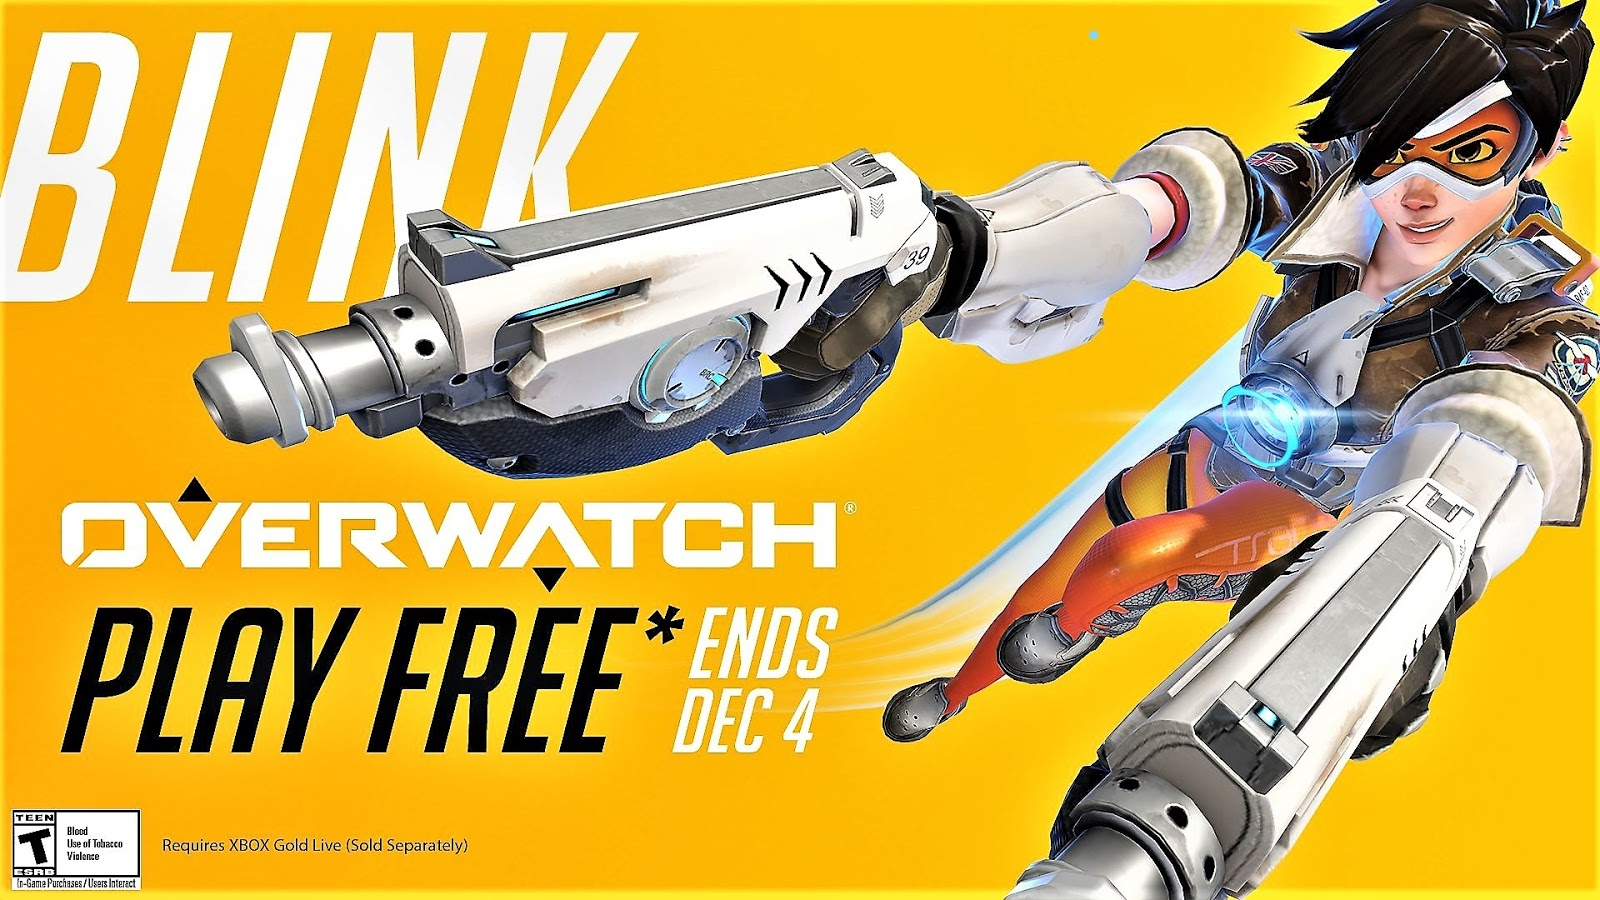 You can now play Overwatch for free until December 4th 2019.